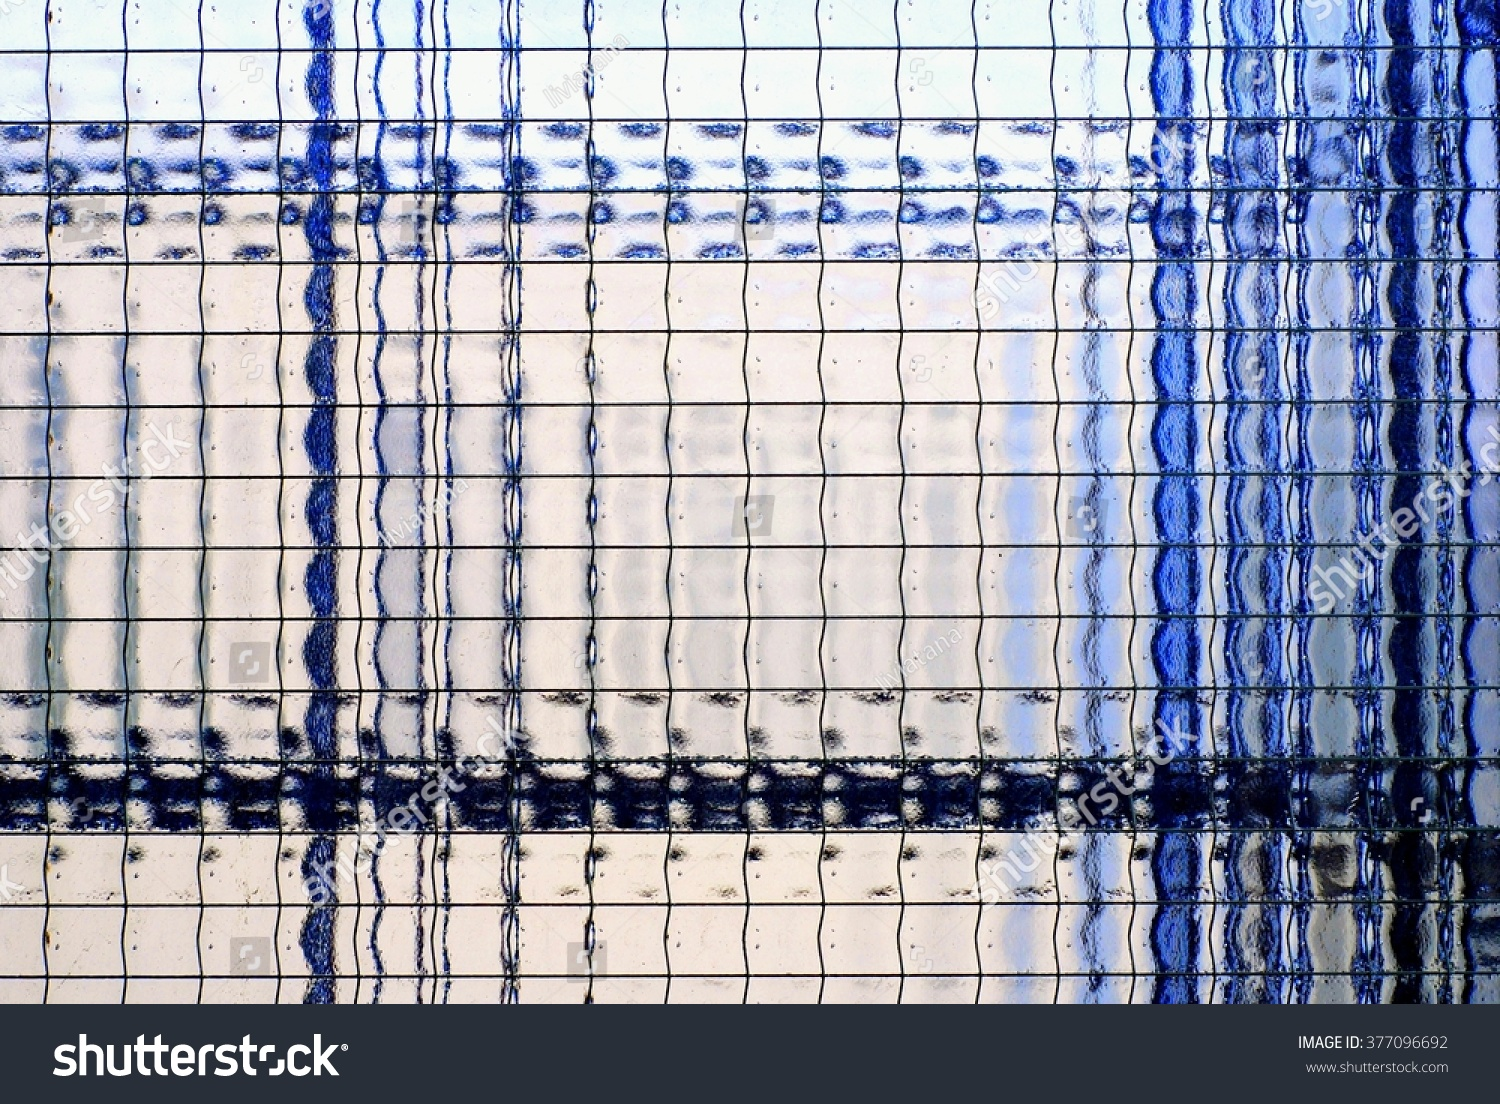 Dorable Decorative Wire Reinforced Glass Windows Gallery ...